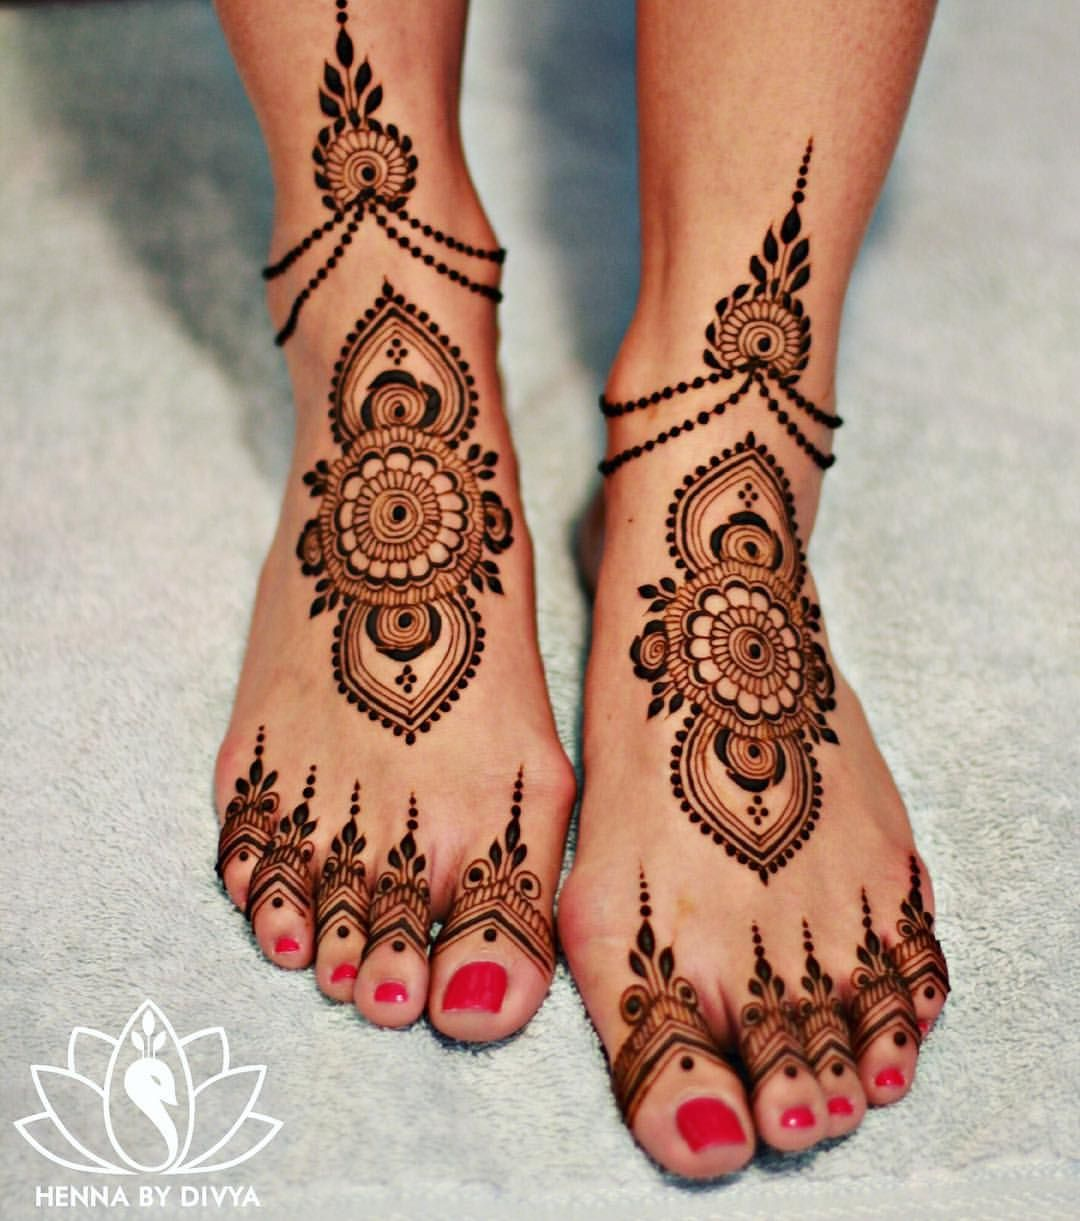 Pin by A ZA on Henna \u0026 Tattoos